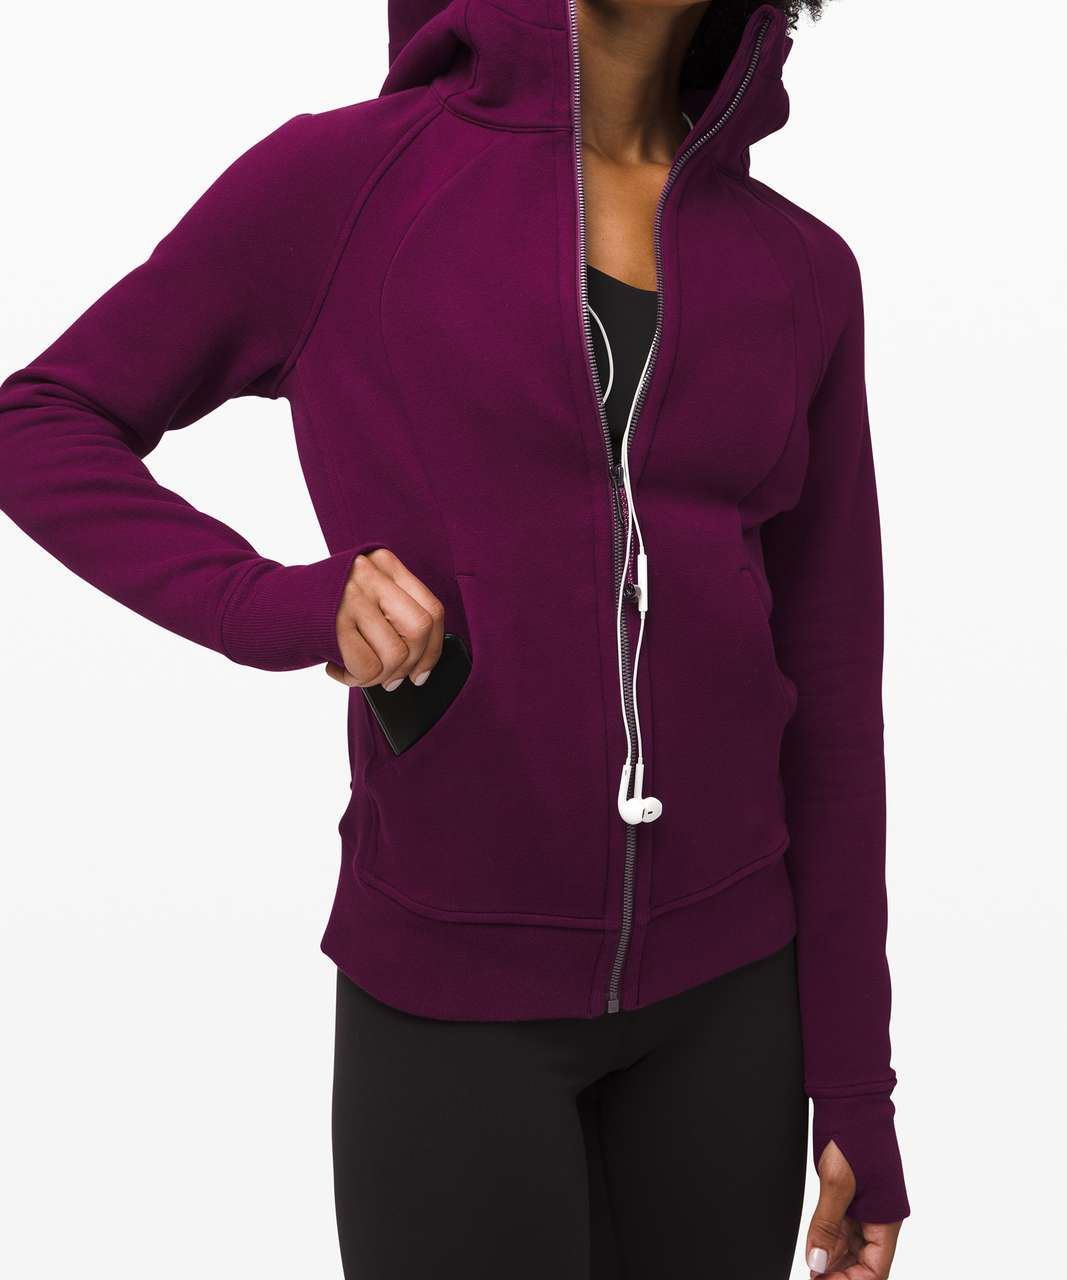 Lululemon Scuba Hoodie *Light Cotton Fleece - Marvel